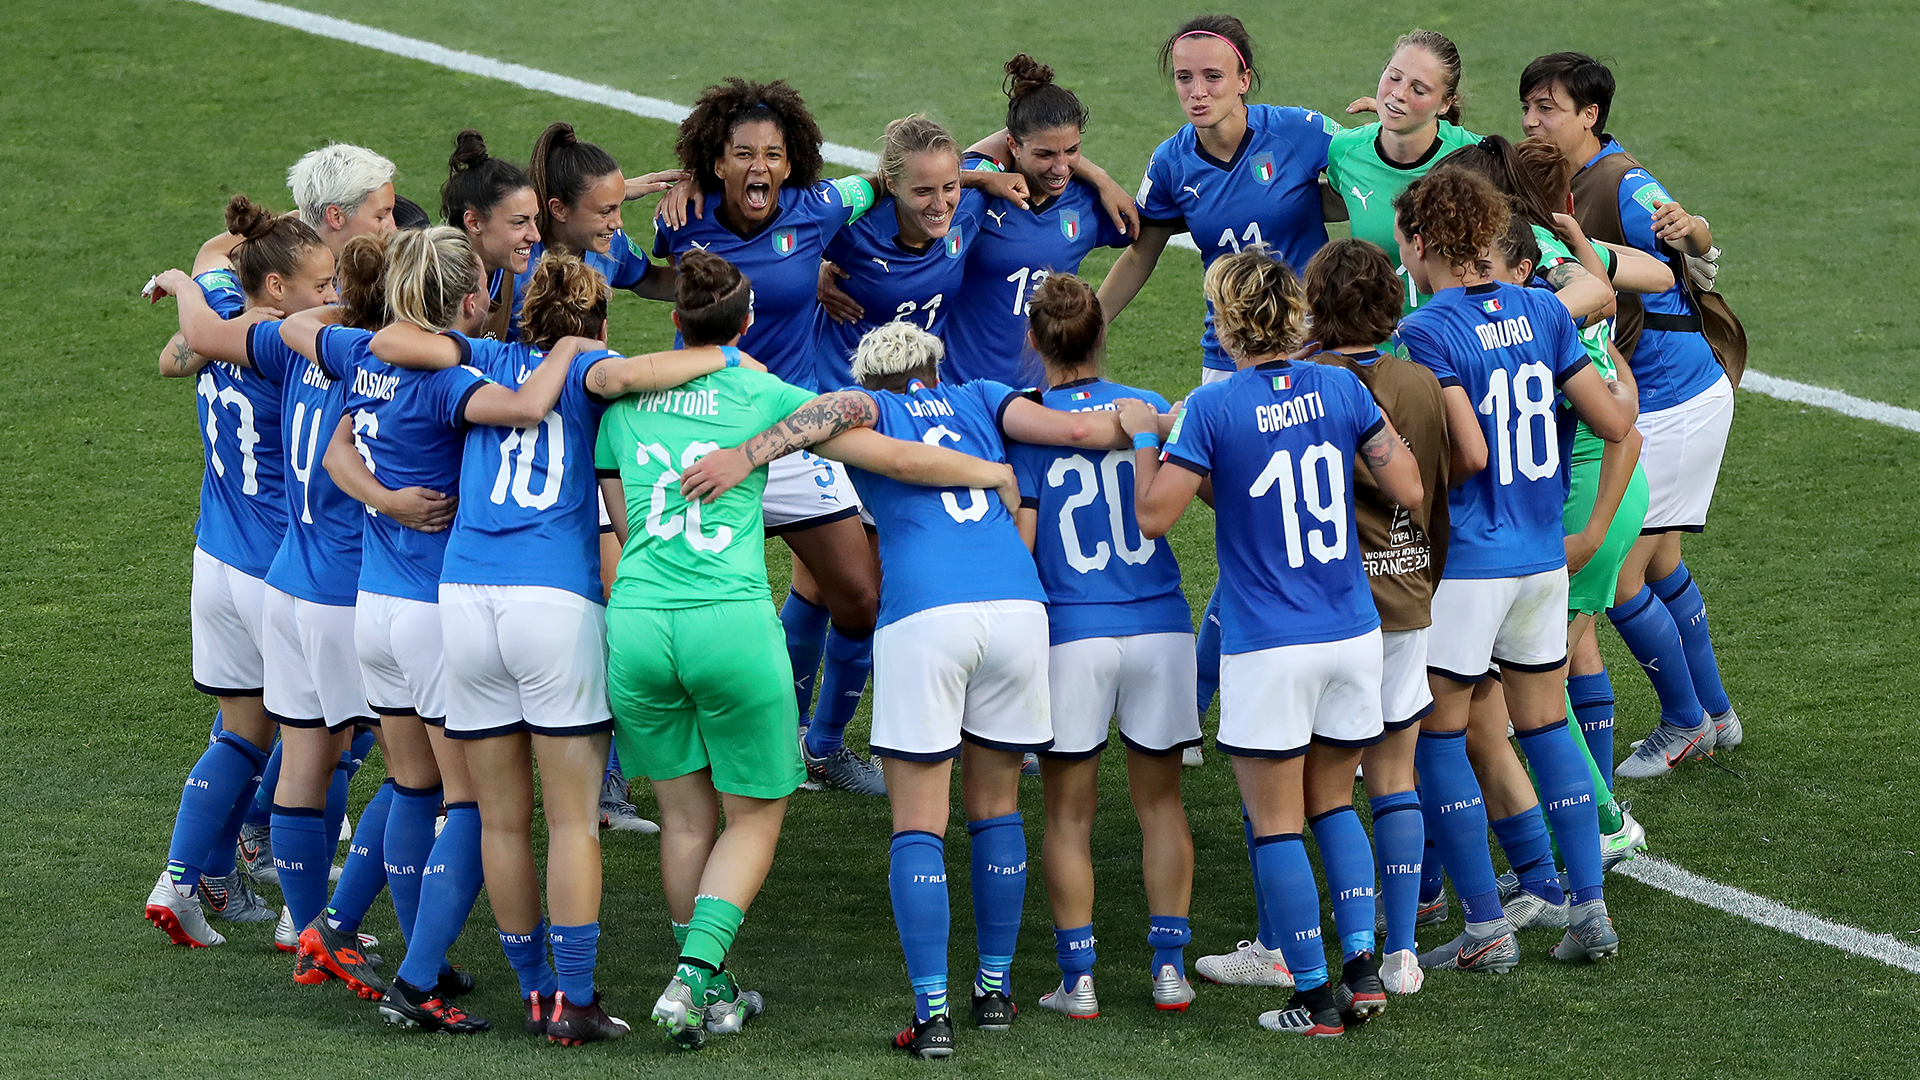 Calcio discovers women! Success of Azzurre gives Italy a feel-good story as new season begins